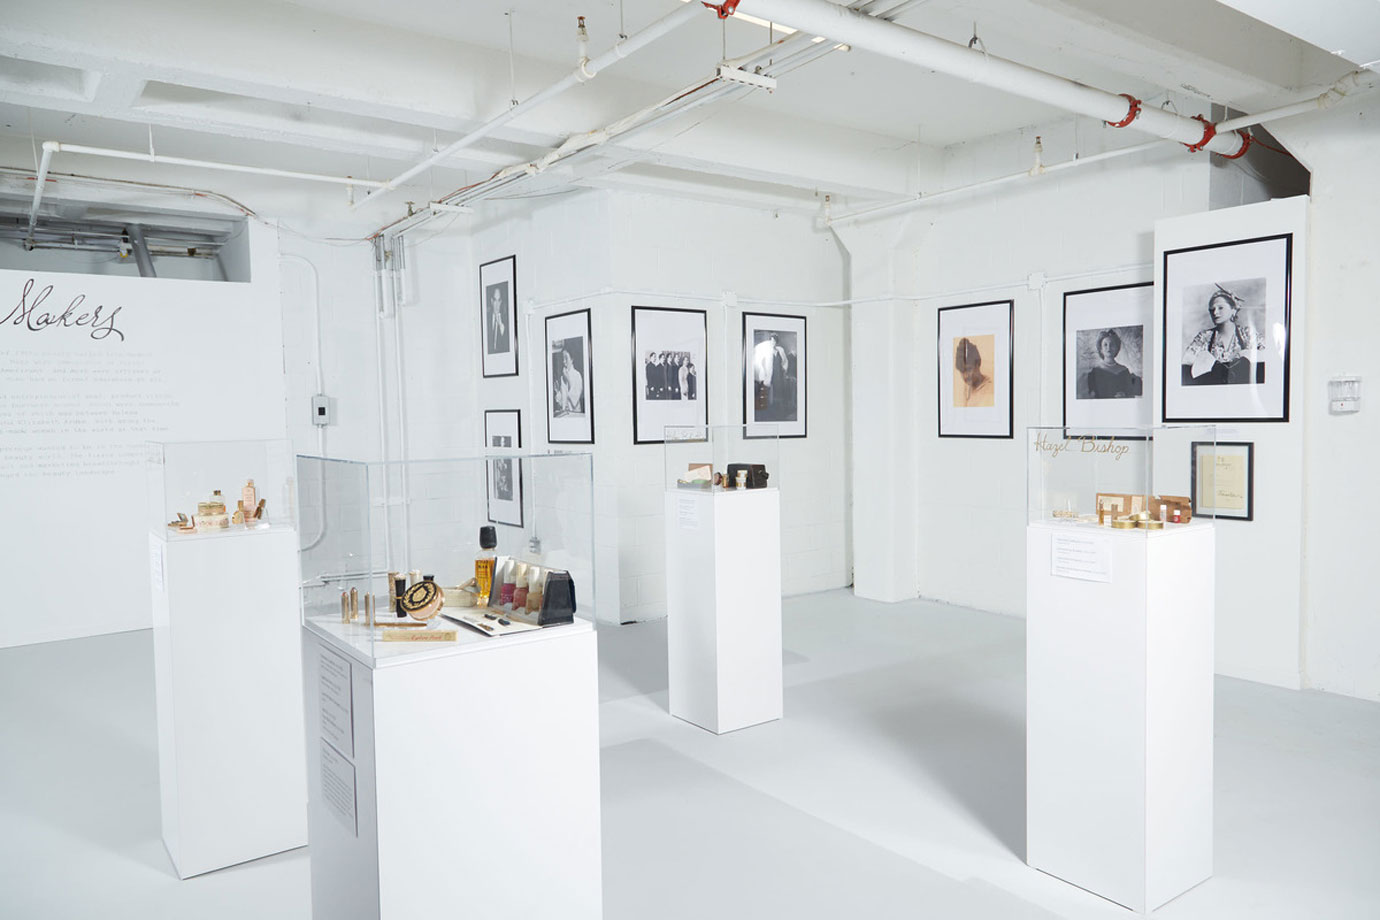 The Makeup Museum's Makers Room.